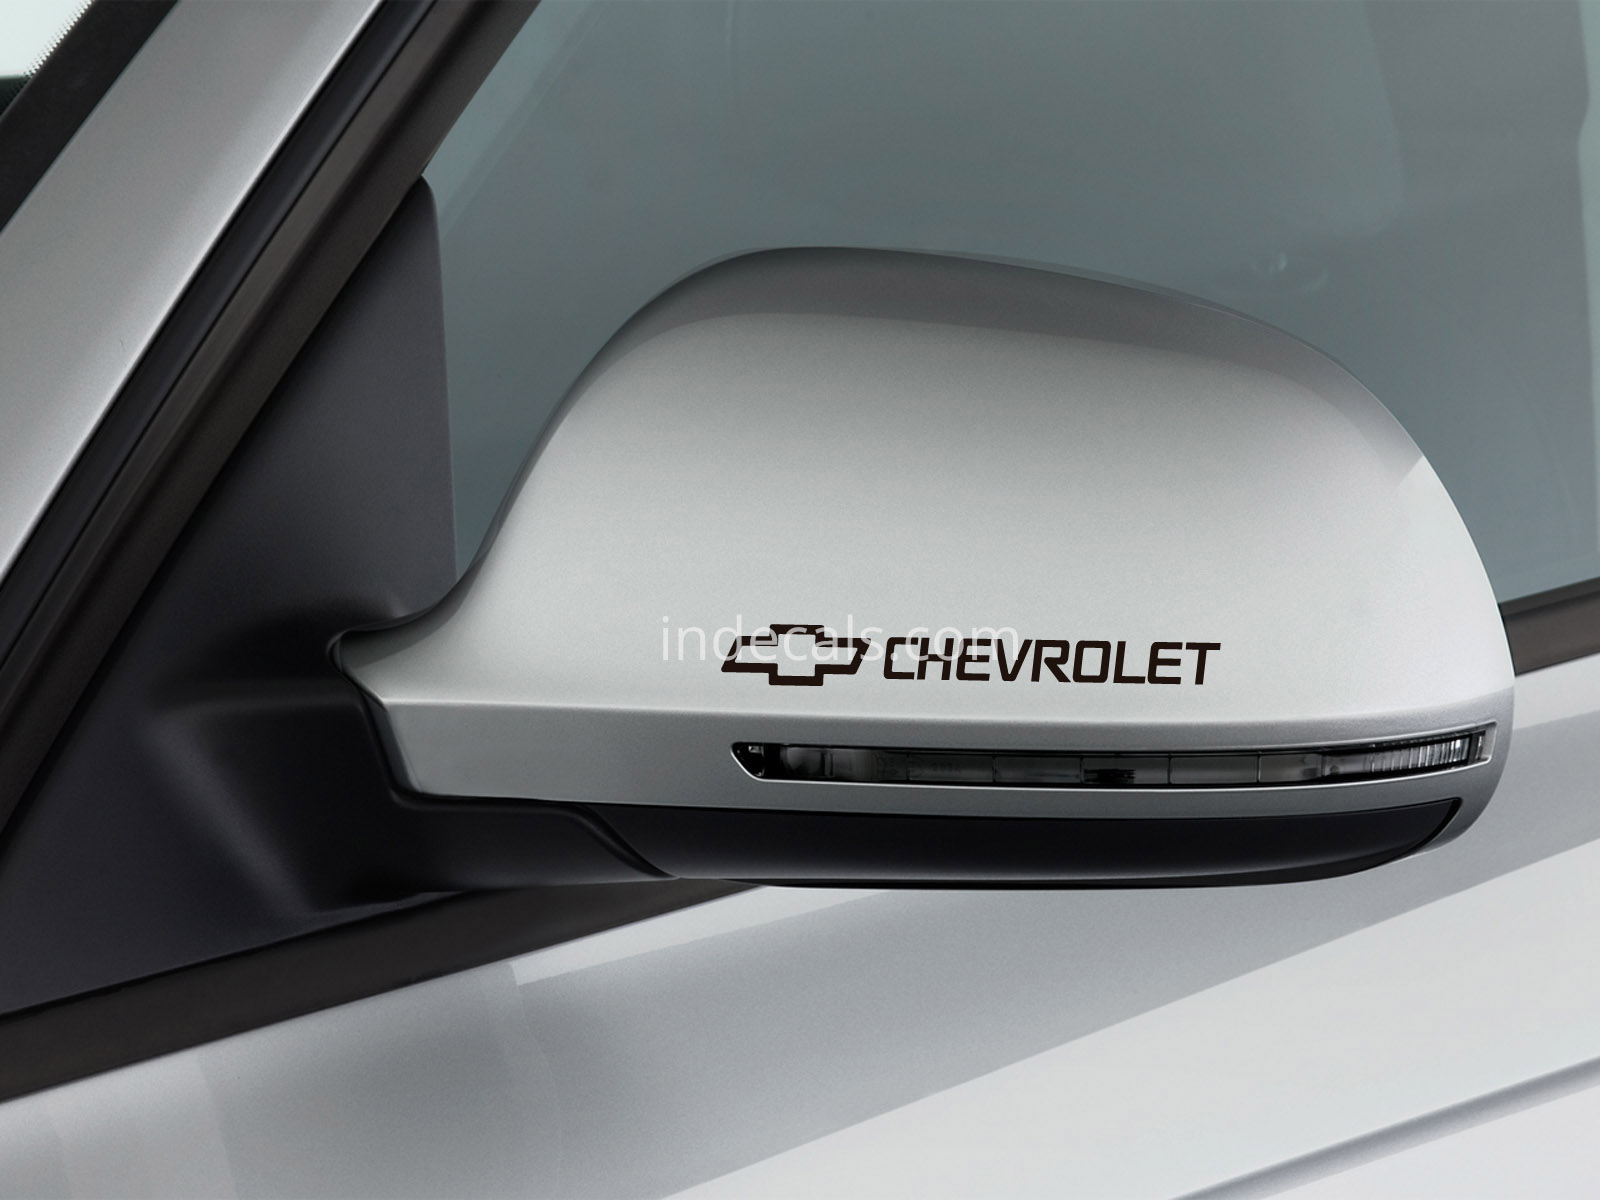 3 x Chevrolet Stickers for Mirrors - Black